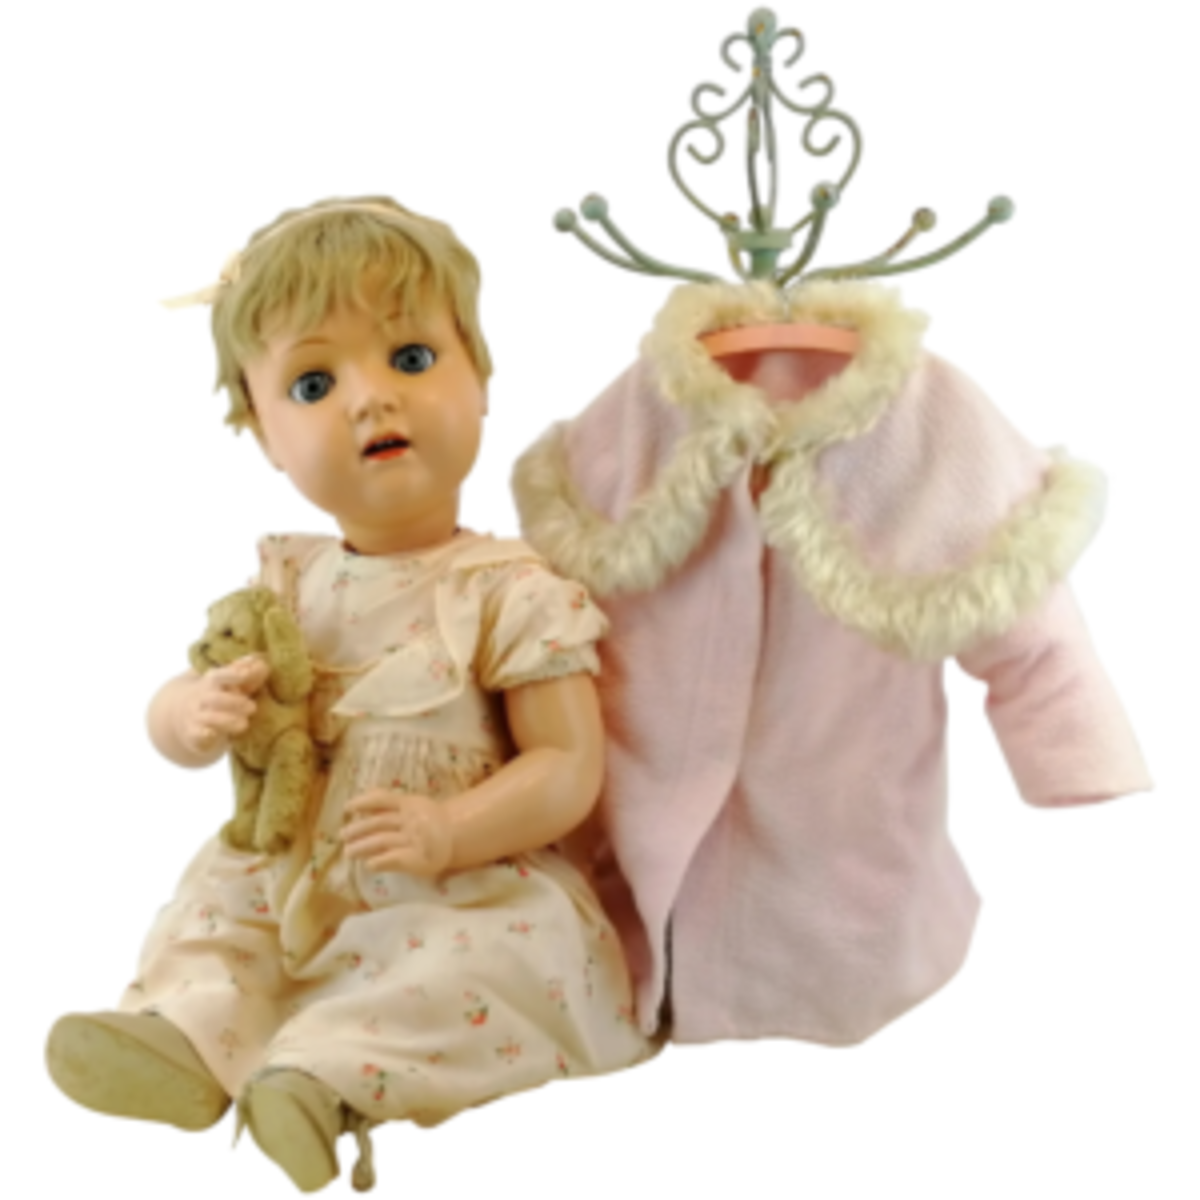 Large antique celluloid baby doll, 1908 to 1919, by Bruno Schmidt, Germany. She's wearing a dress of silky cotton with roses and for the colder days, she has a fancy pink coat with faux fur trim. She also has her own small and well-loved teddy bear; $275. Courtesy of Hildegard's Toy Emporium: rubylane.com/shop/hildegards-toy-emporium